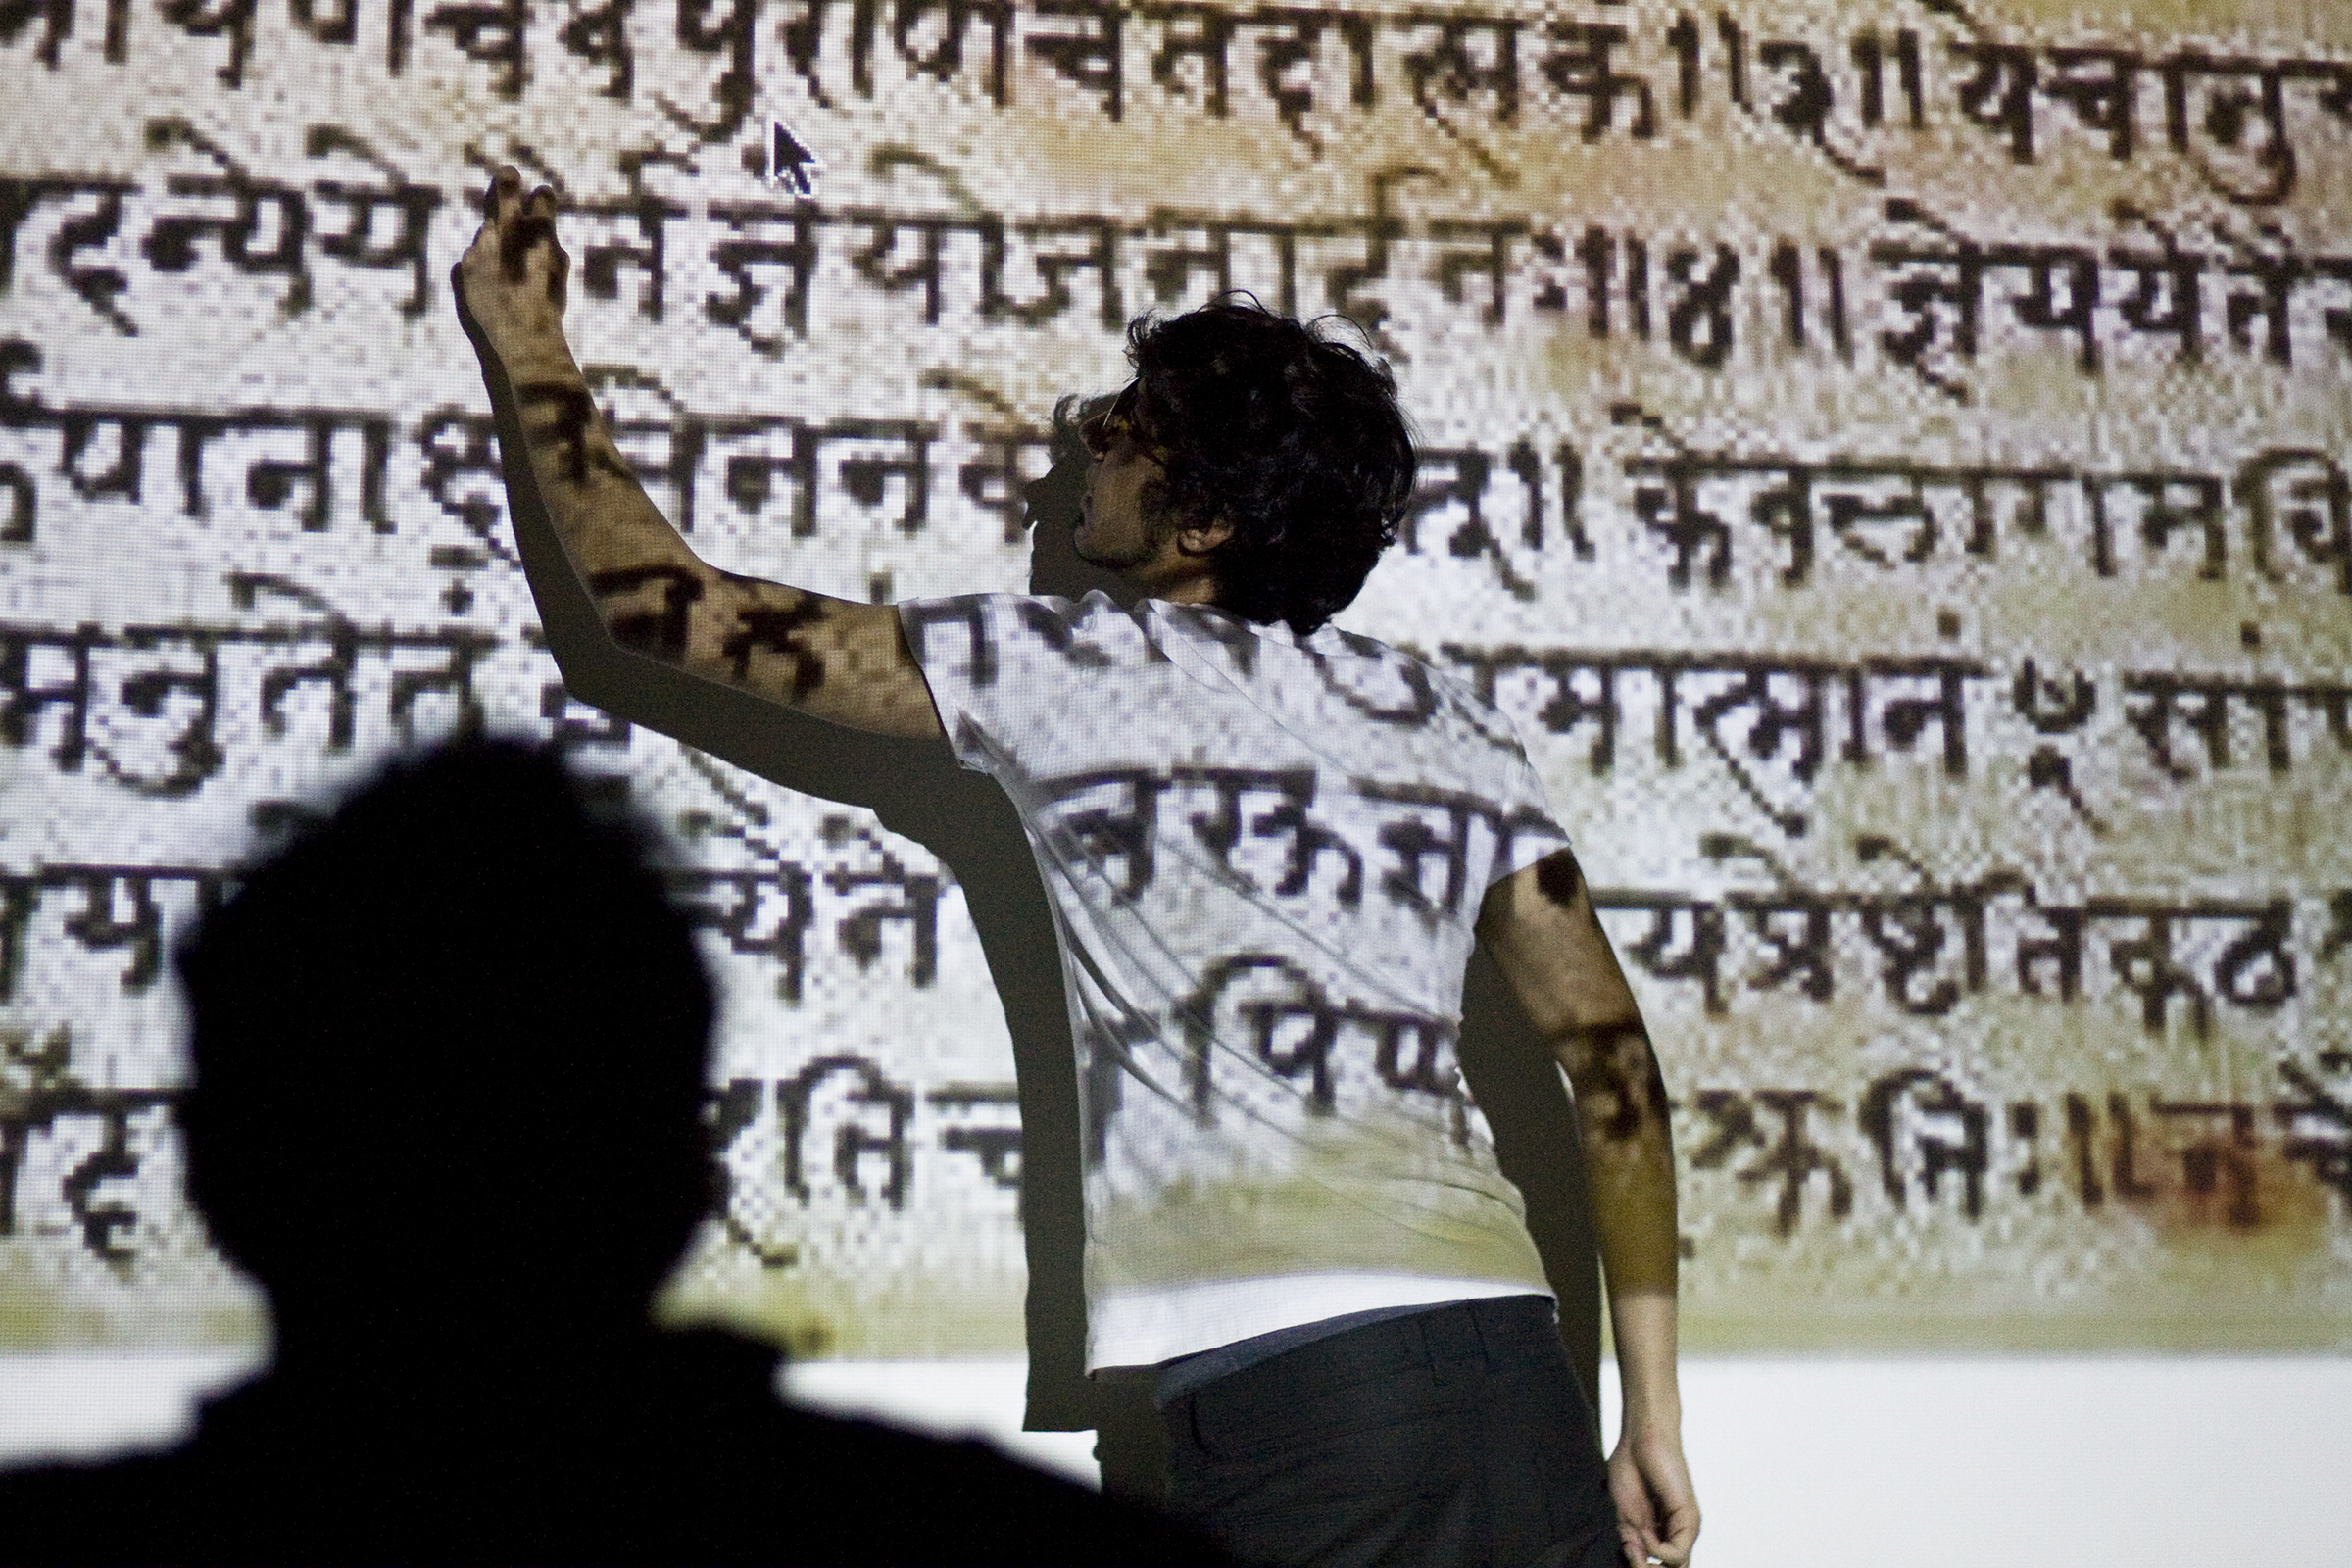 Rishabh discusses details of his source language material, in this case Sanskrit, used in a project he is presenting at TypeThursday March, 2016.